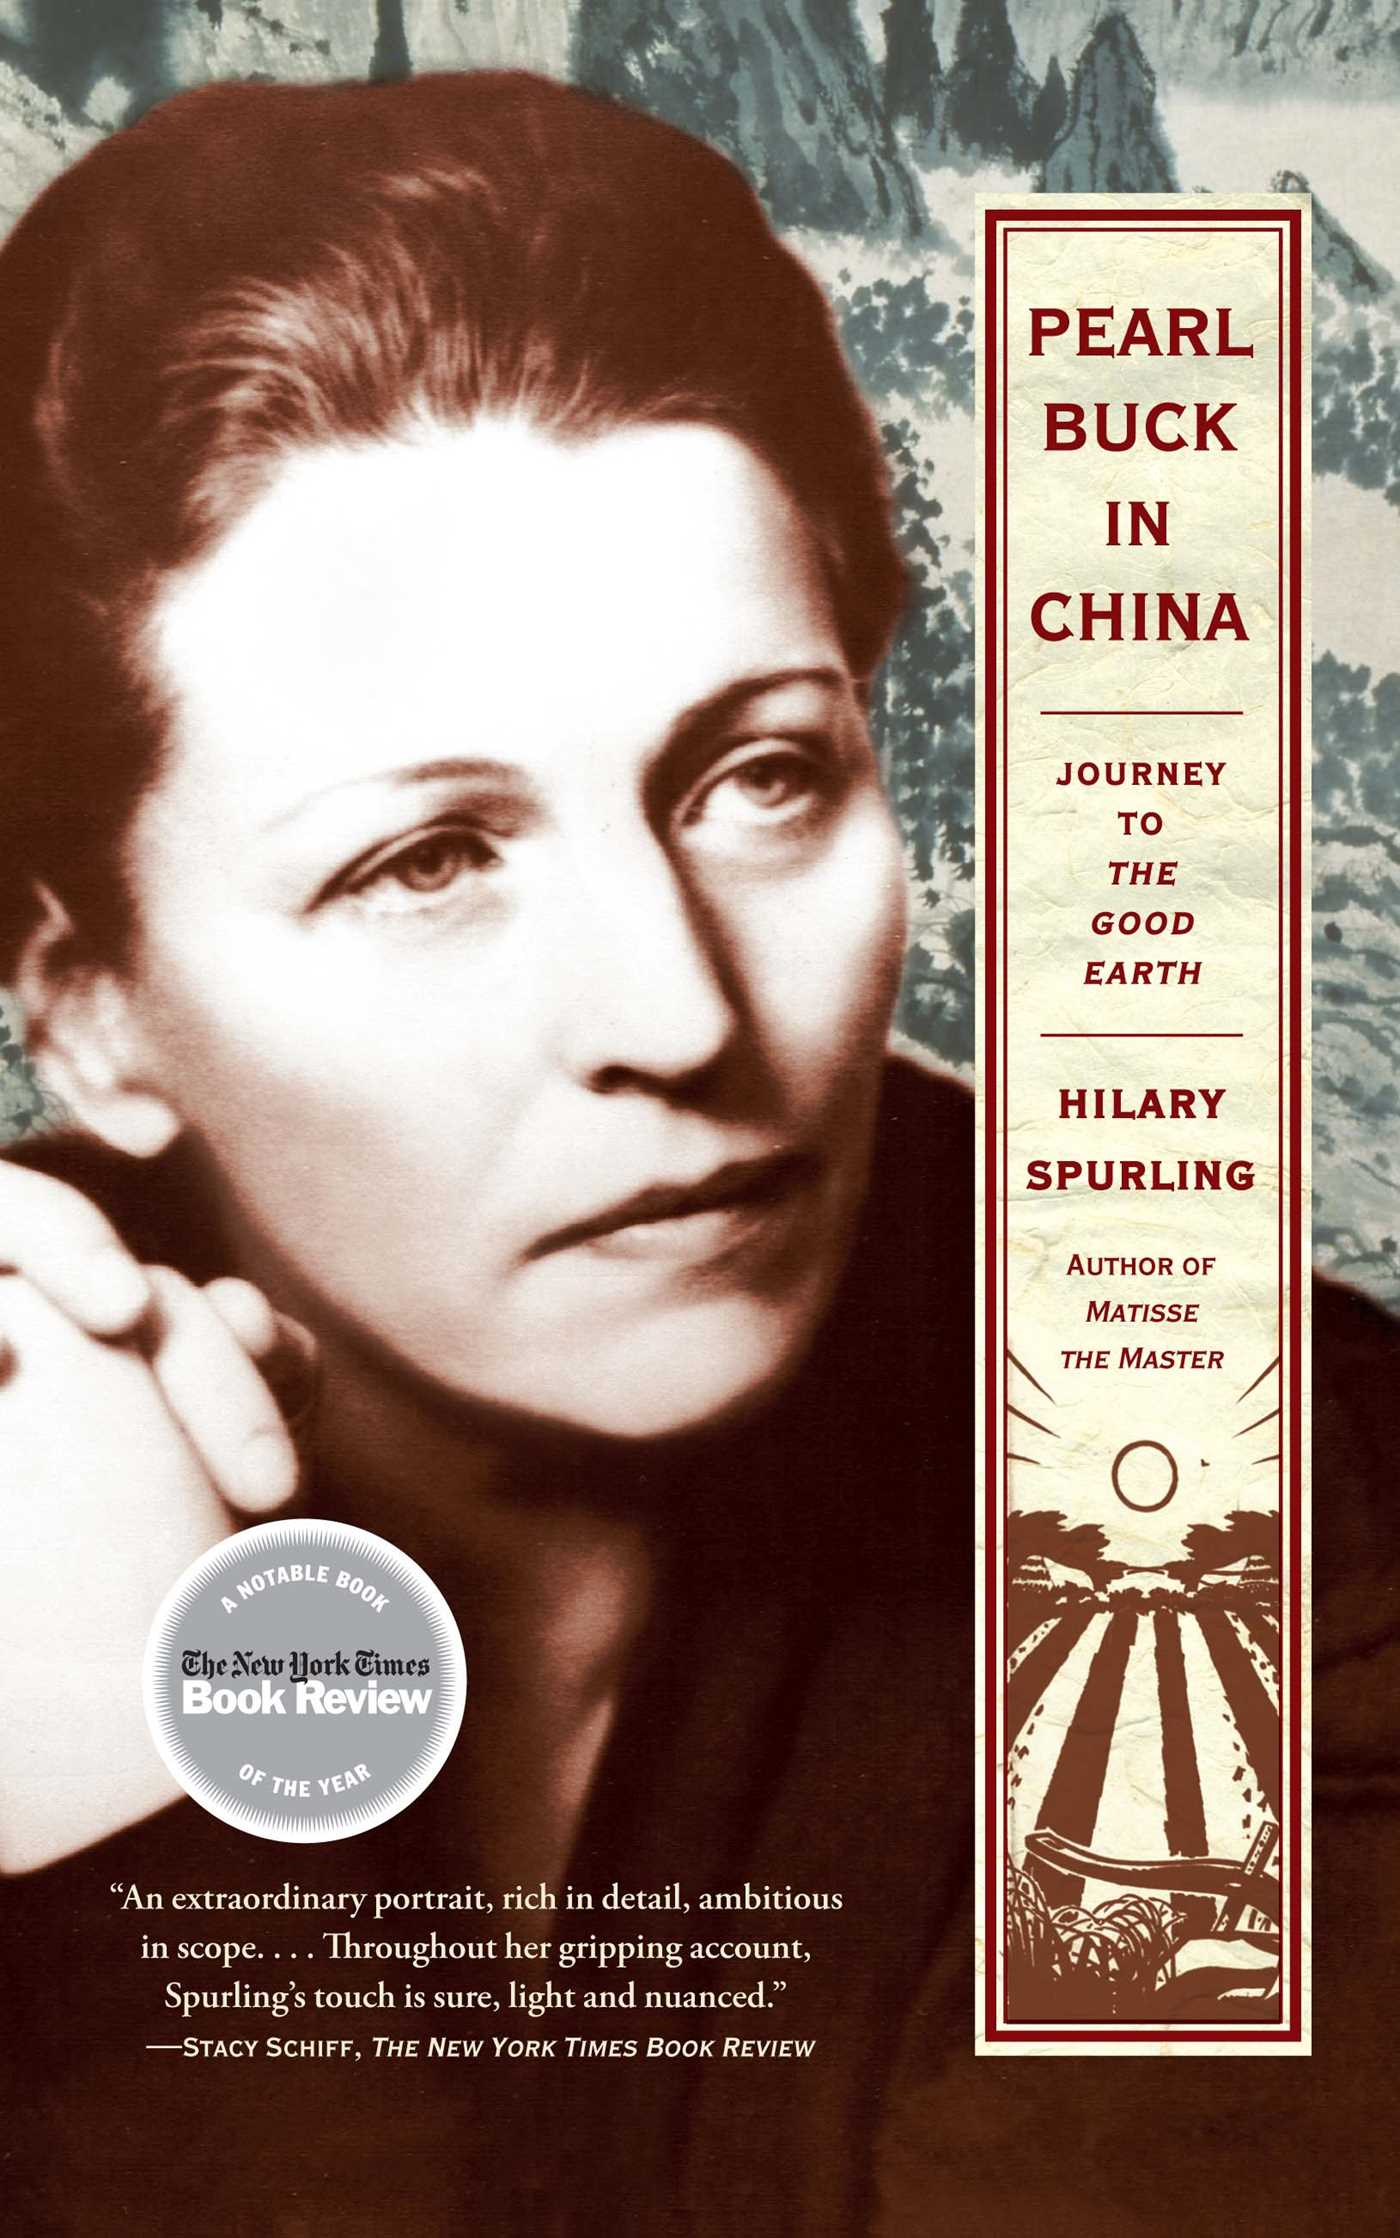 Pearl-buck-in-china-9781416540434_hr